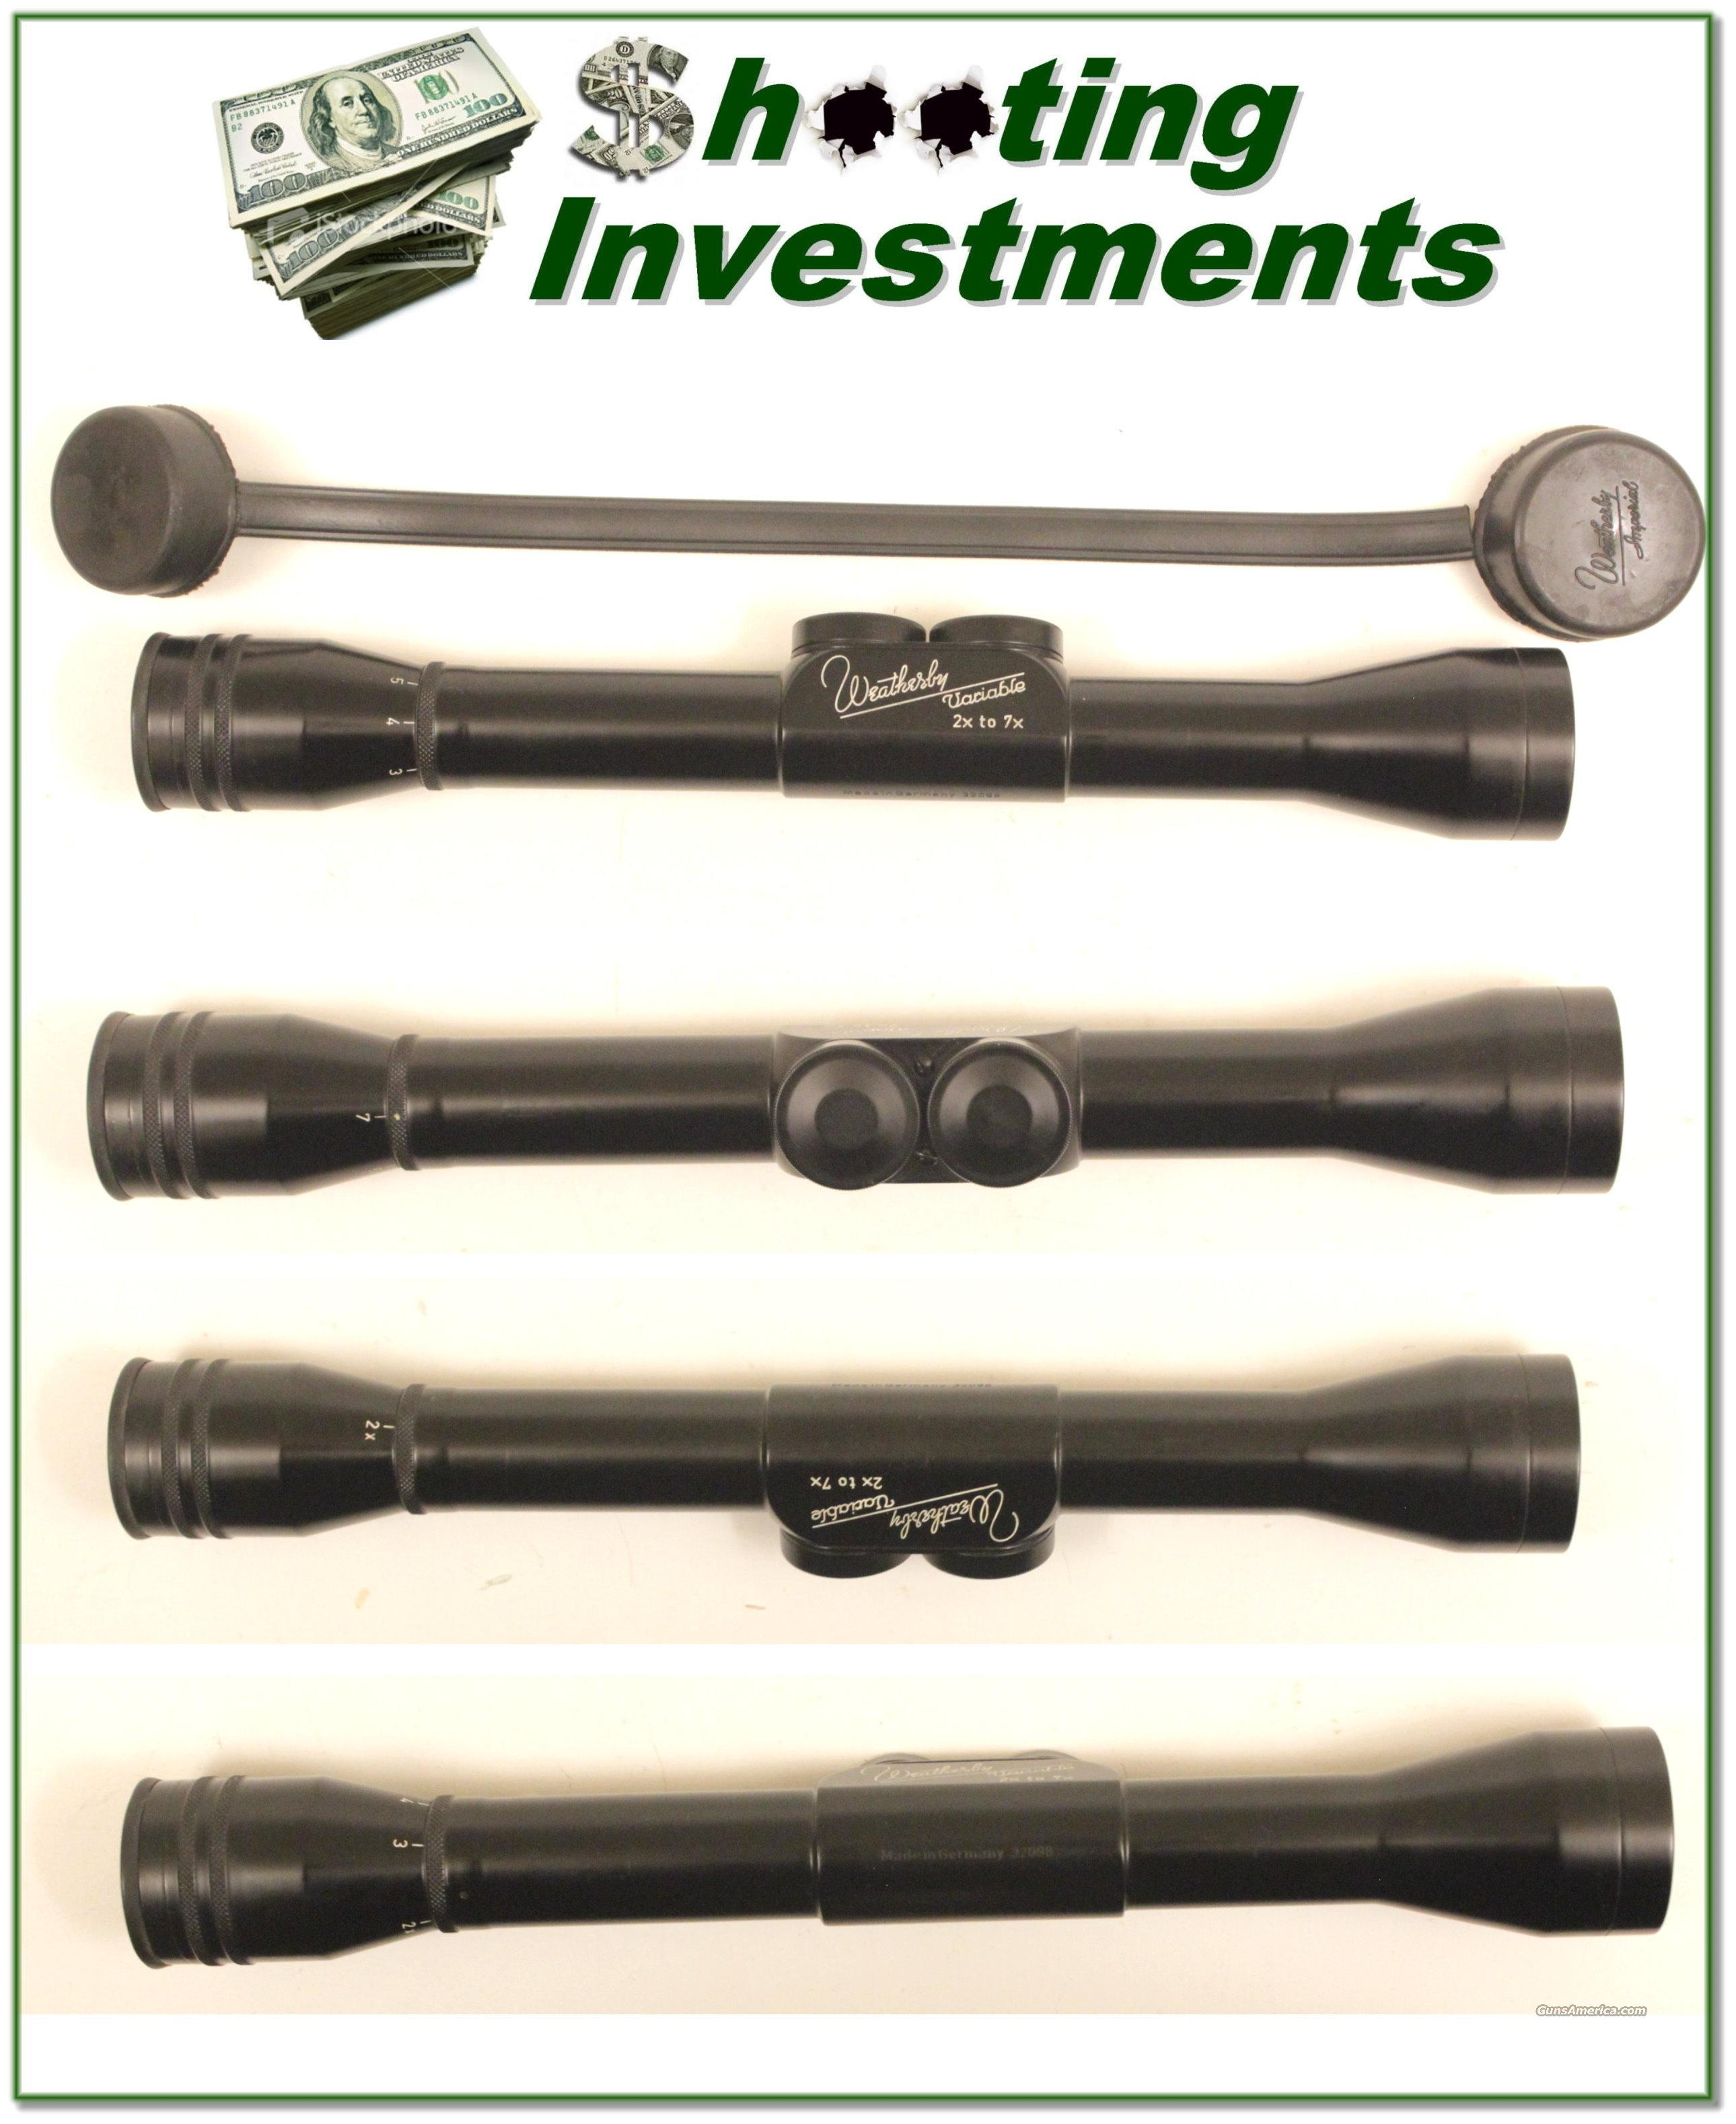 Weatherby Imperial vintage German 2-7x Rifle Scope   Non-Guns > Scopes/Mounts/Rings & Optics > Rifle Scopes > Variable Focal Length